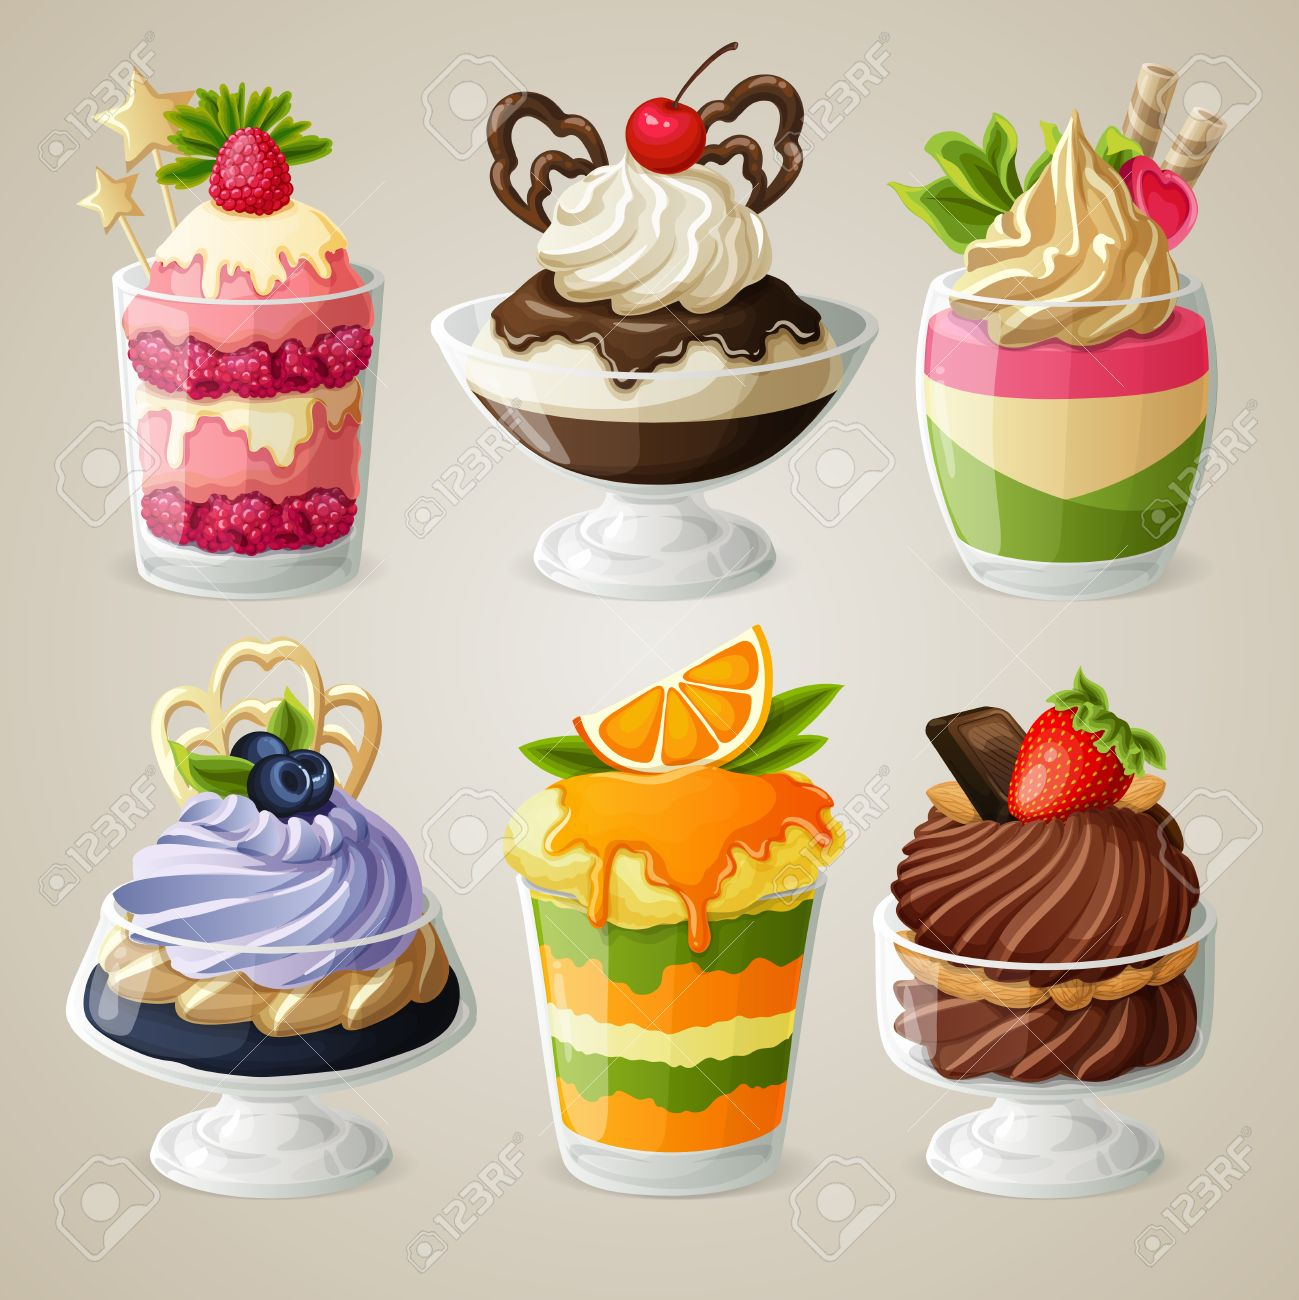 Decorative Sweets Ice Cream And Mousse In Glass Desserts With